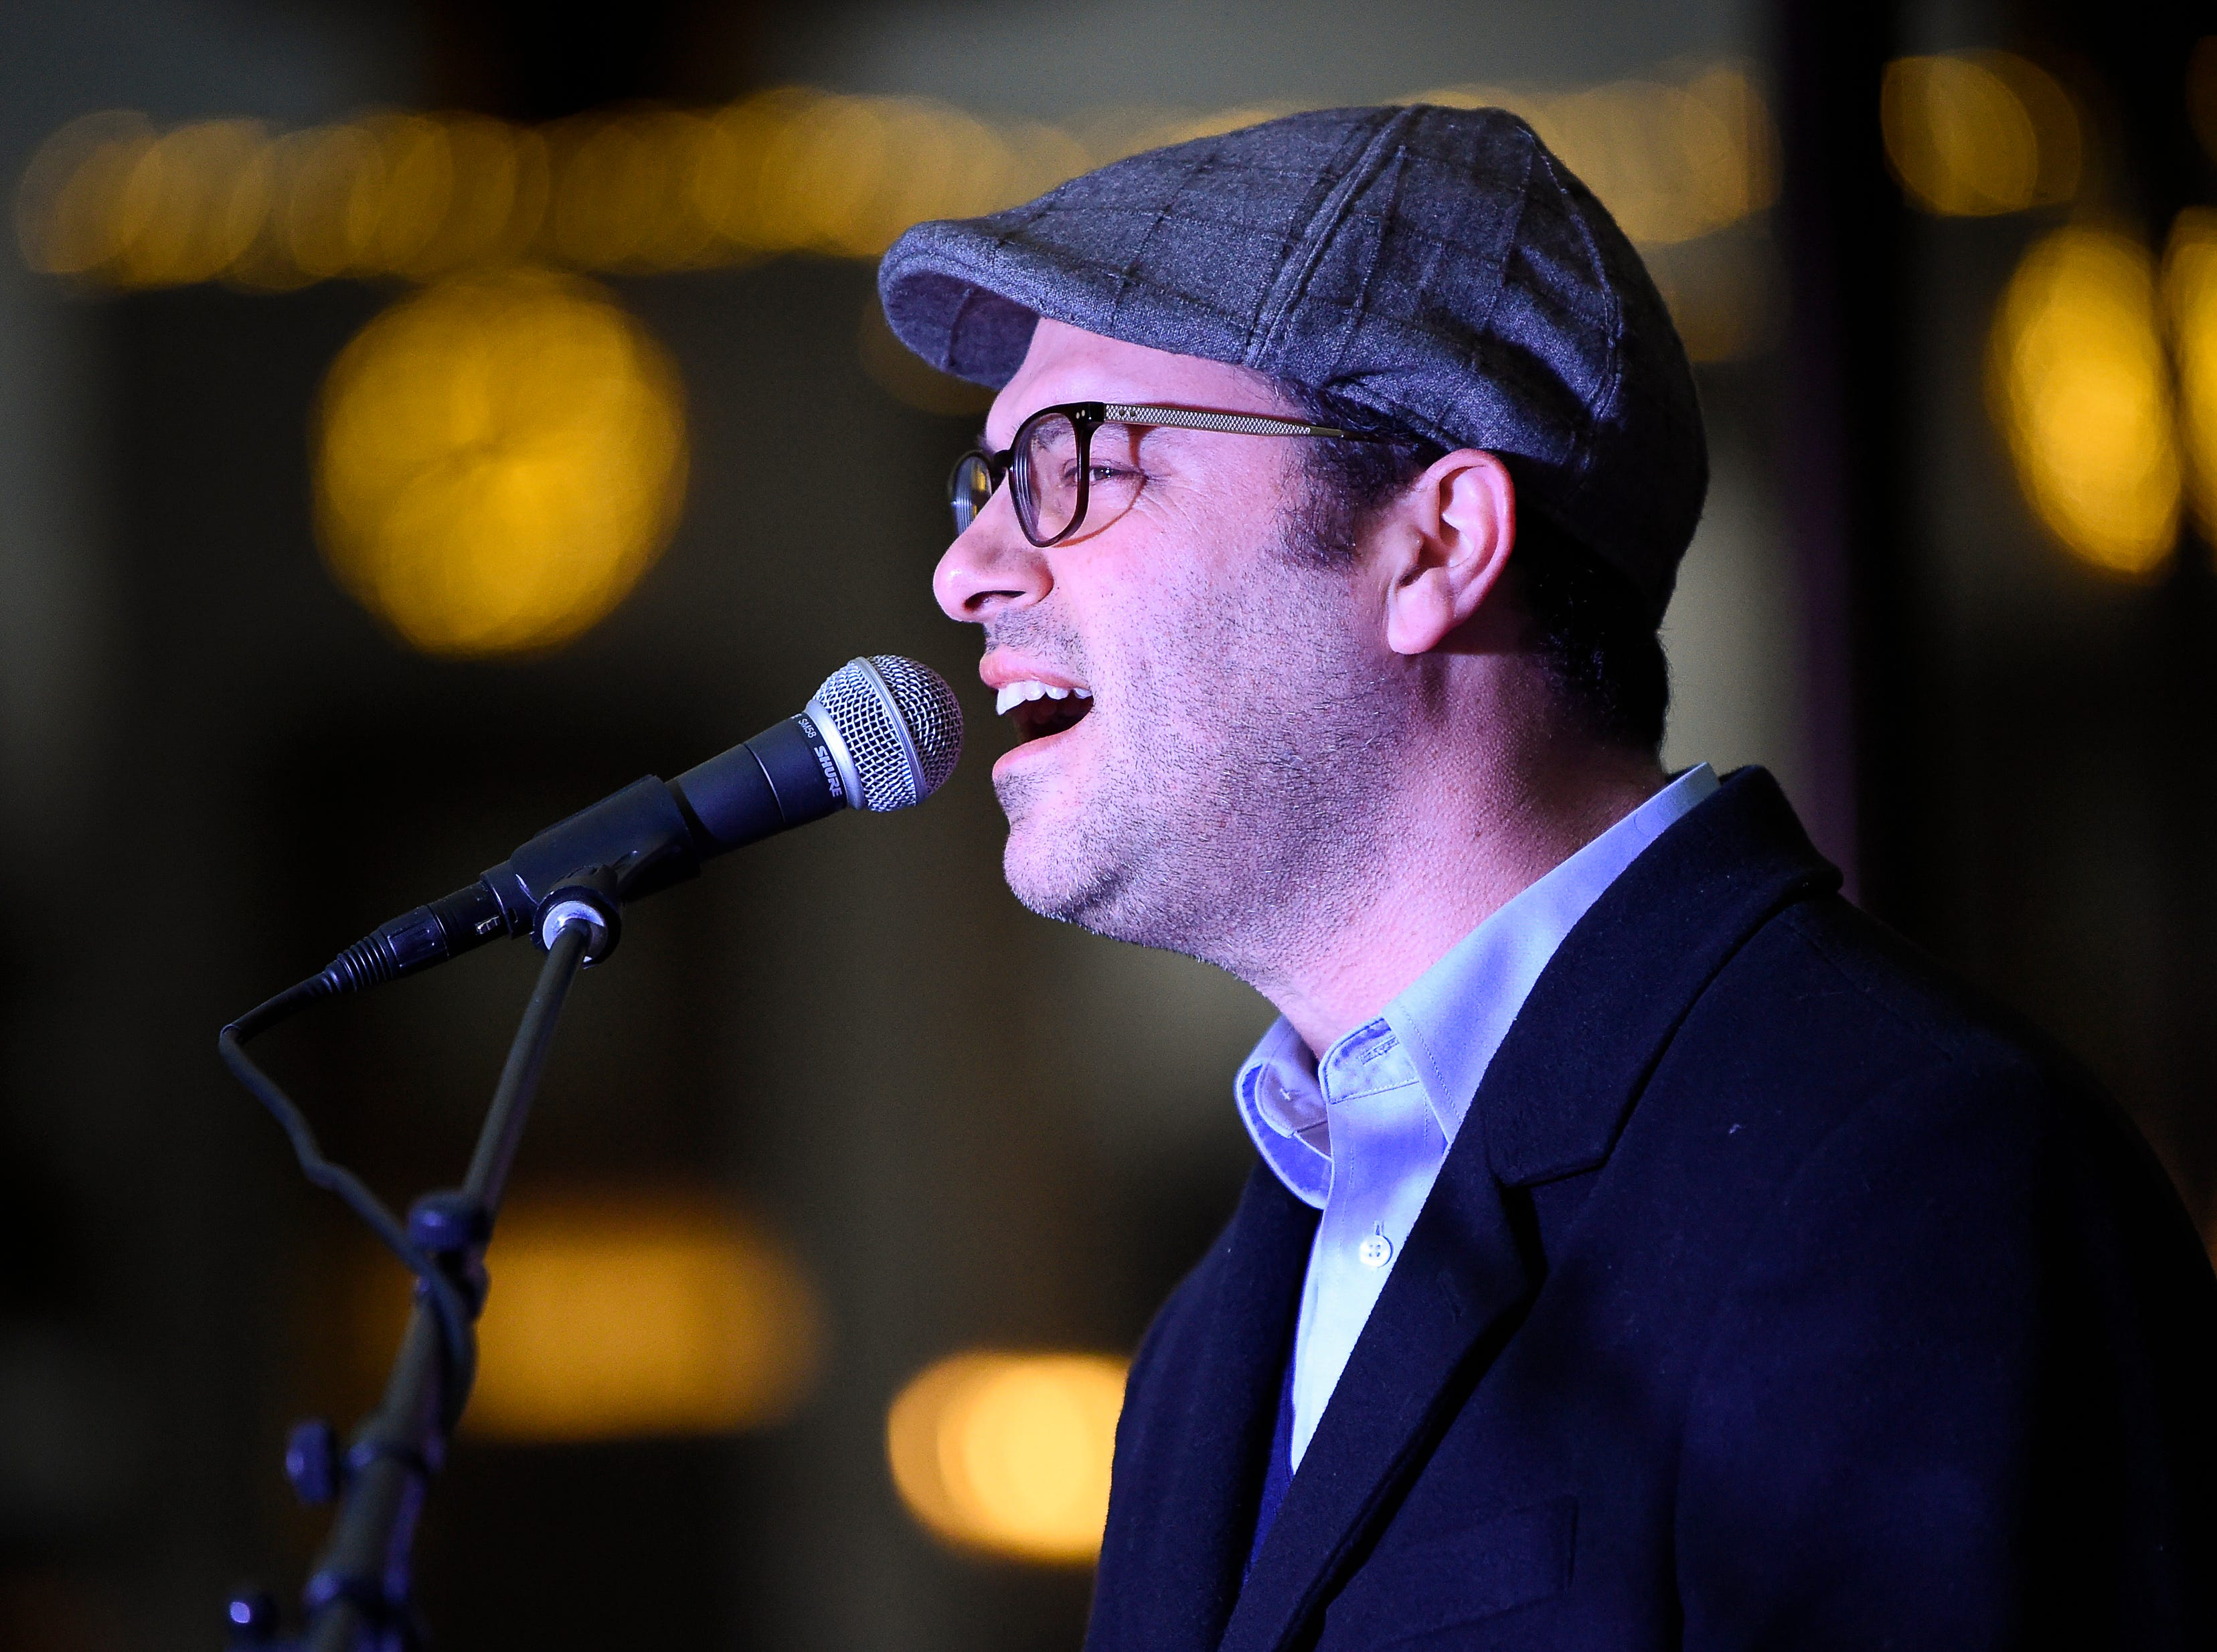 Saul Strosberg performs at the Chanukah menorah lighting ceremony at Public Square Park Tuesday, Dec. 4, 2018, in Nashville, Tenn.